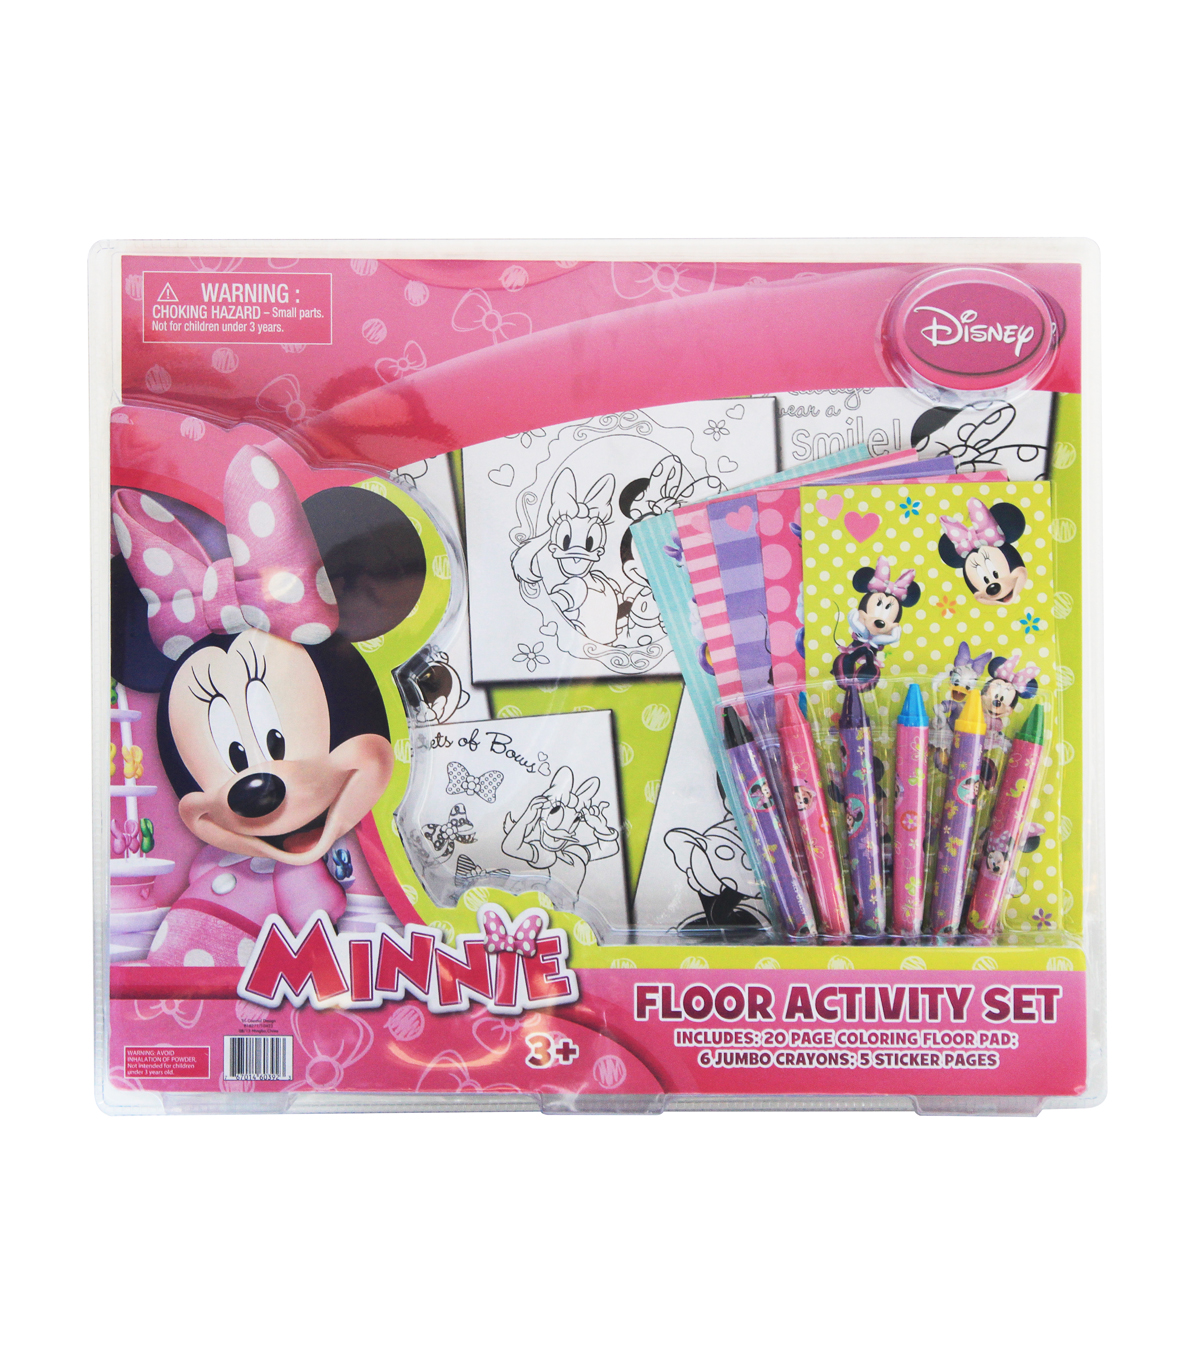 Minnie Mouse Floor Activity Set